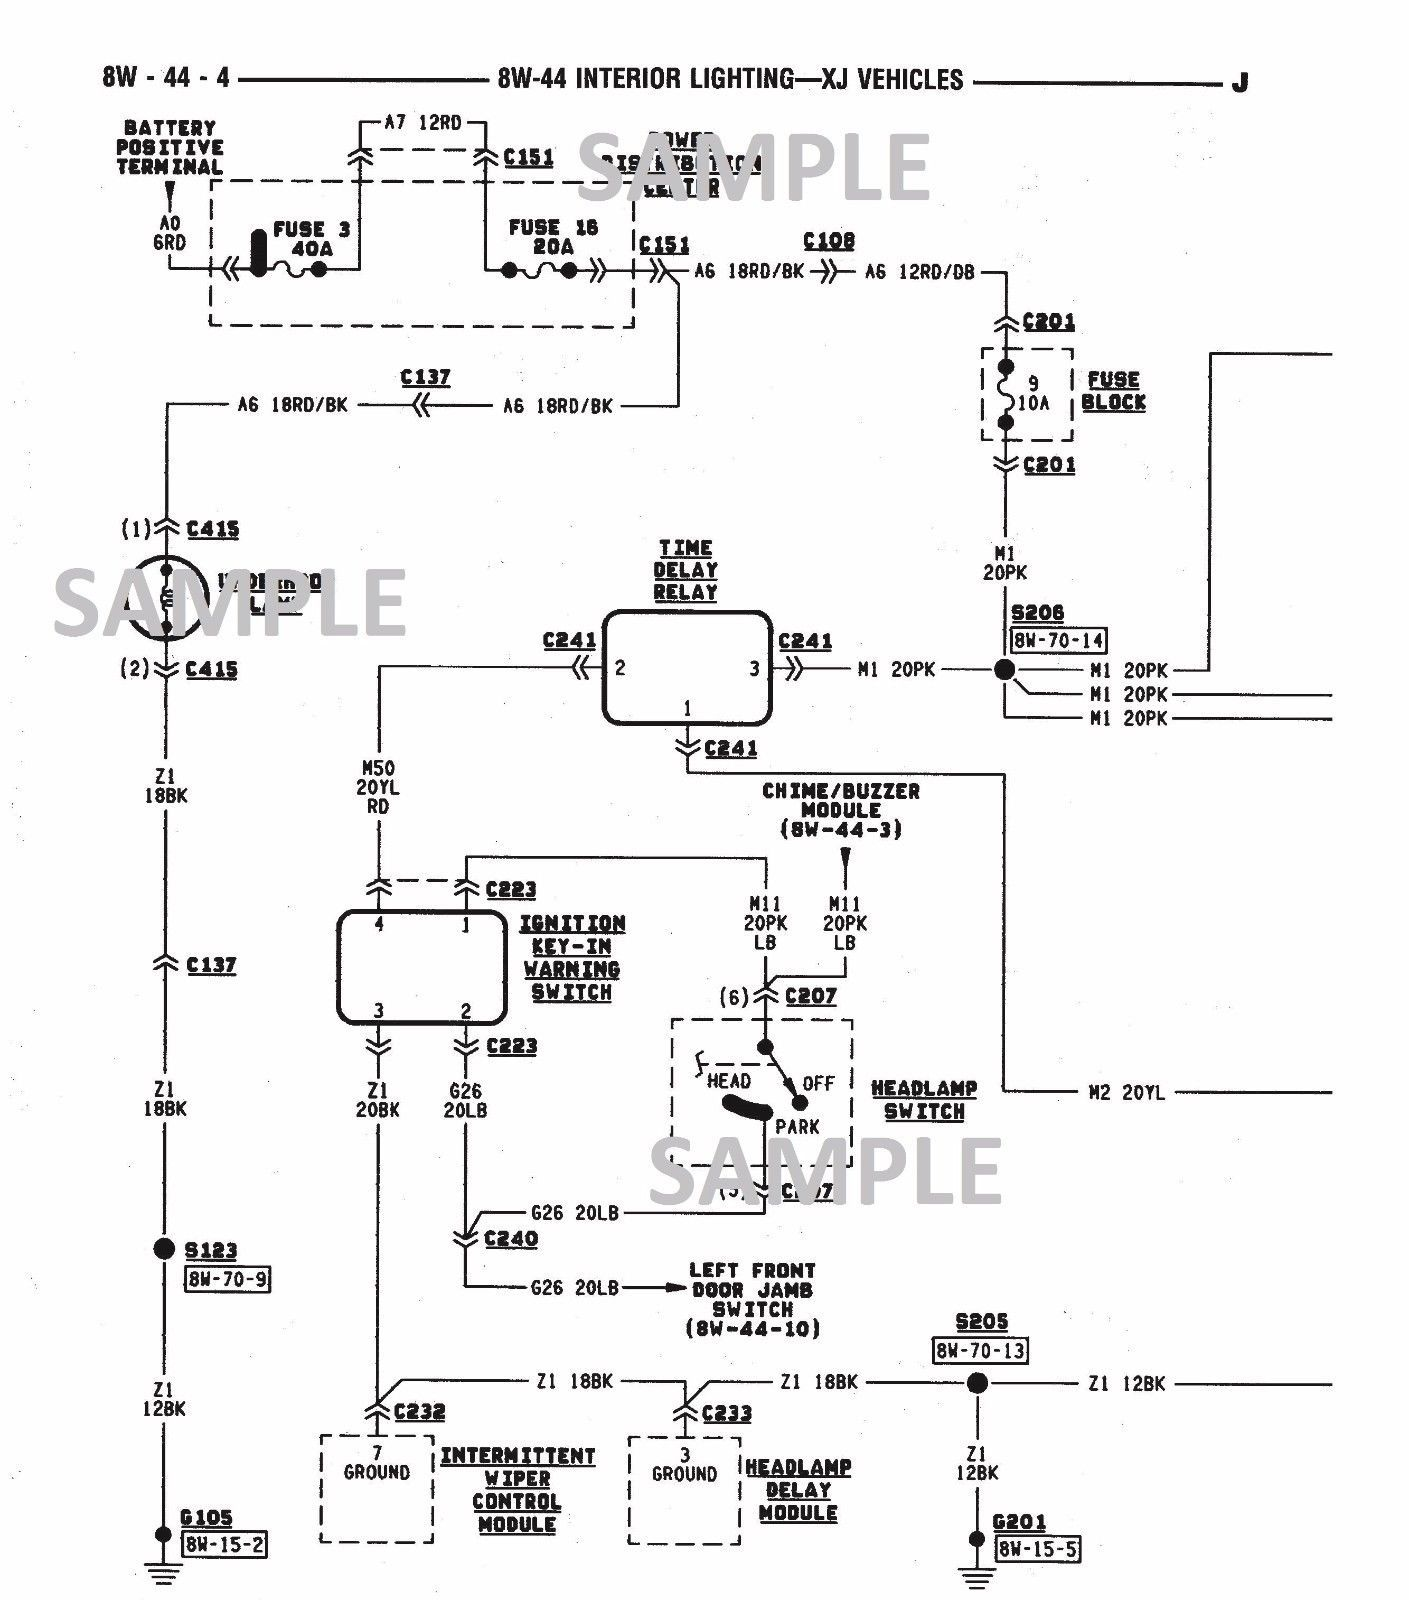 DIAGRAM Haynes Wiring Diagram Jeep Cherokee FULL Version ...